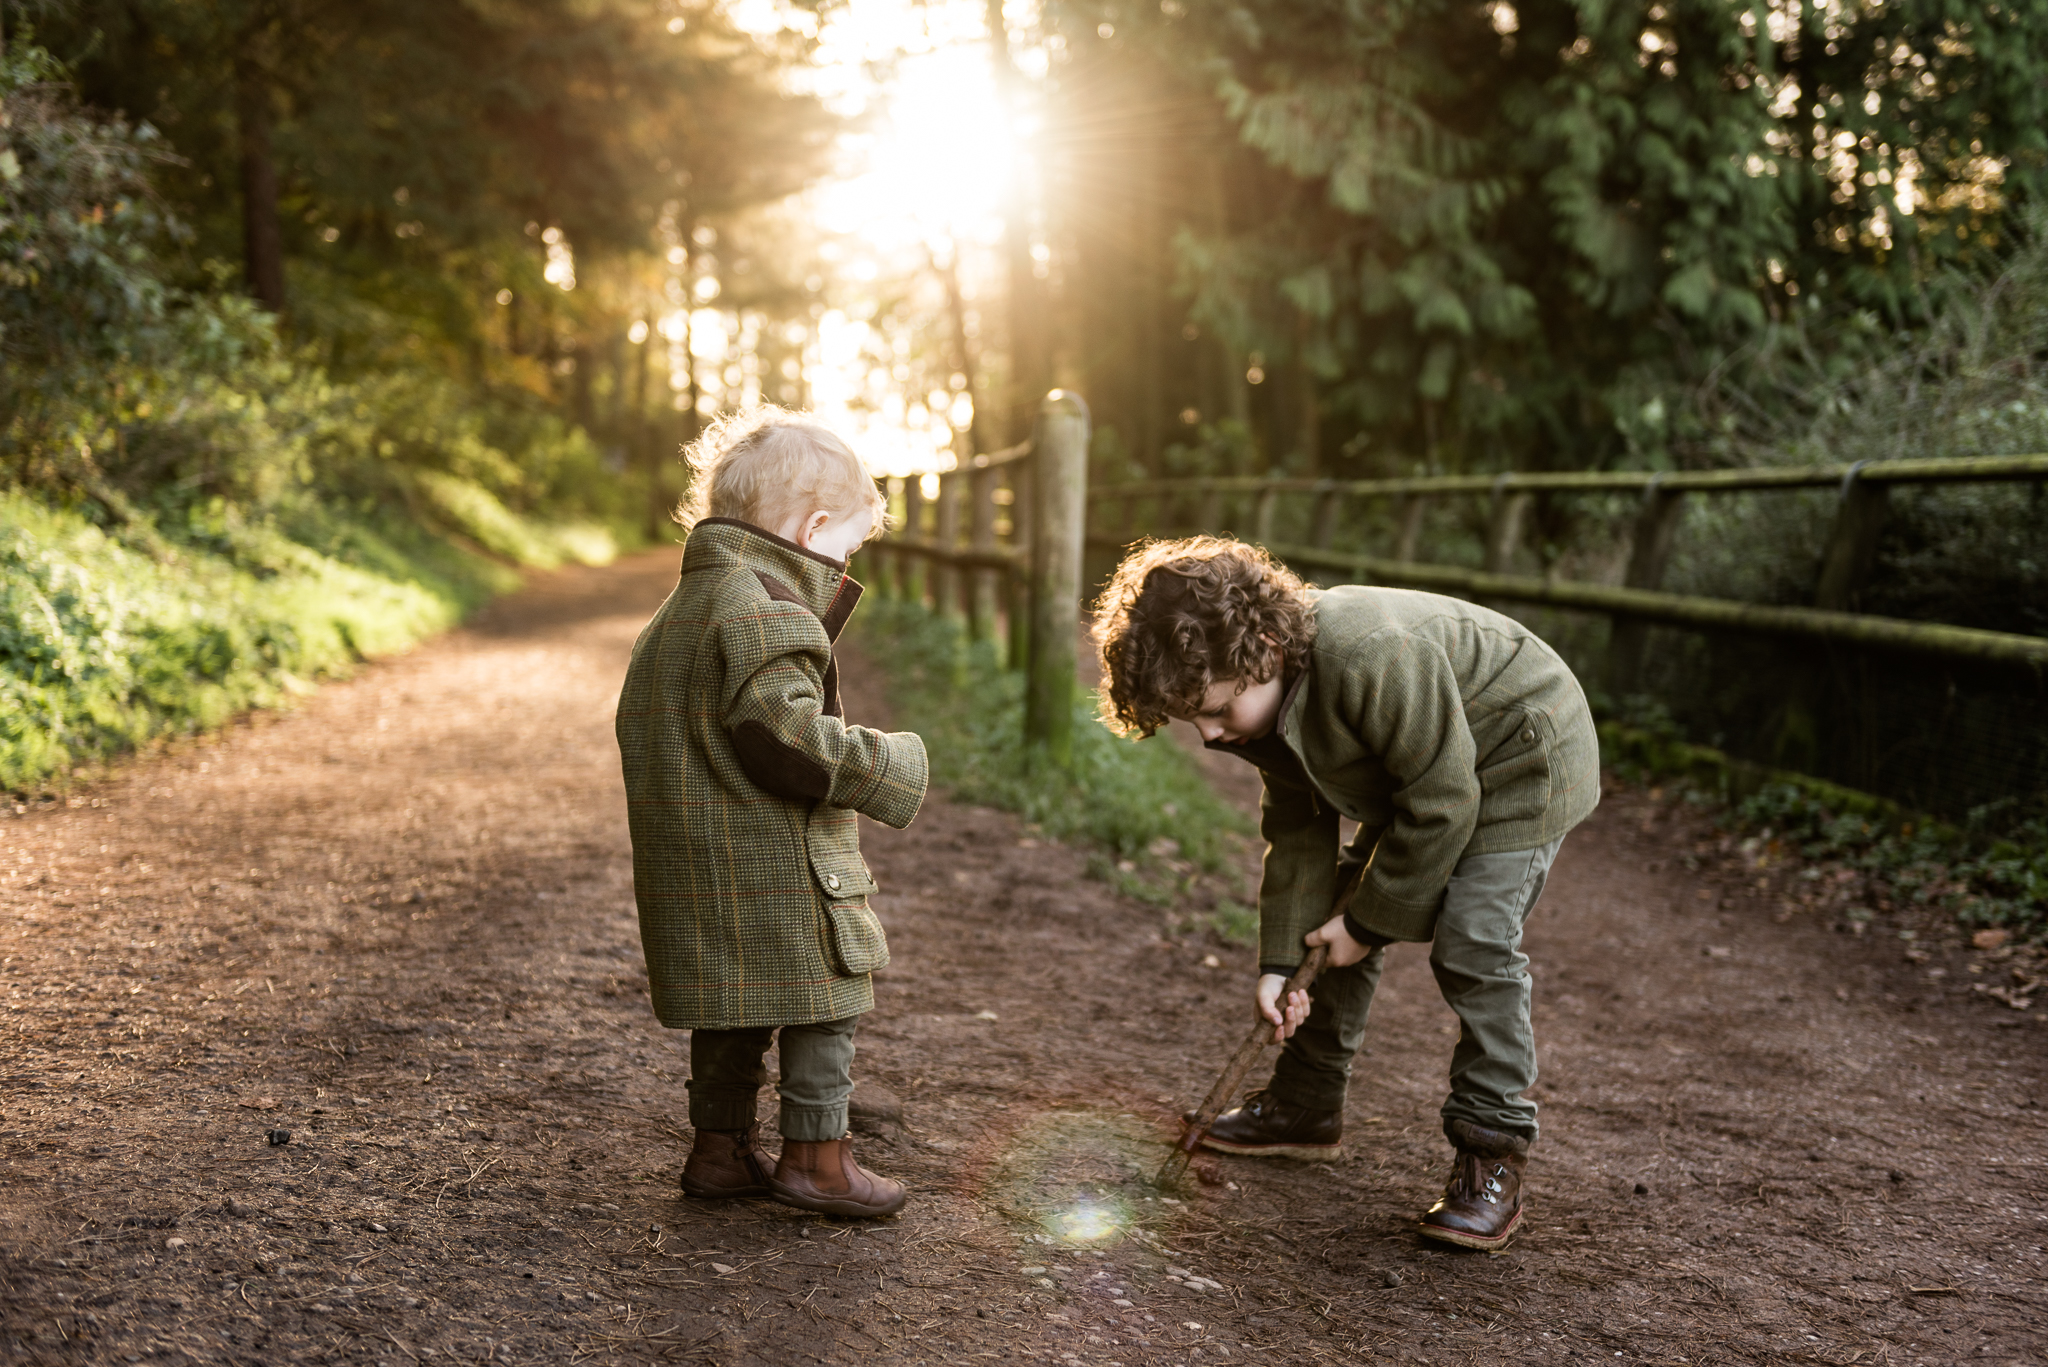 Autumn Documentary Lifestyle Family Photography at Clent Hills, Worcestershire Country Park countryside outdoors nature - Jenny Harper-23.jpg